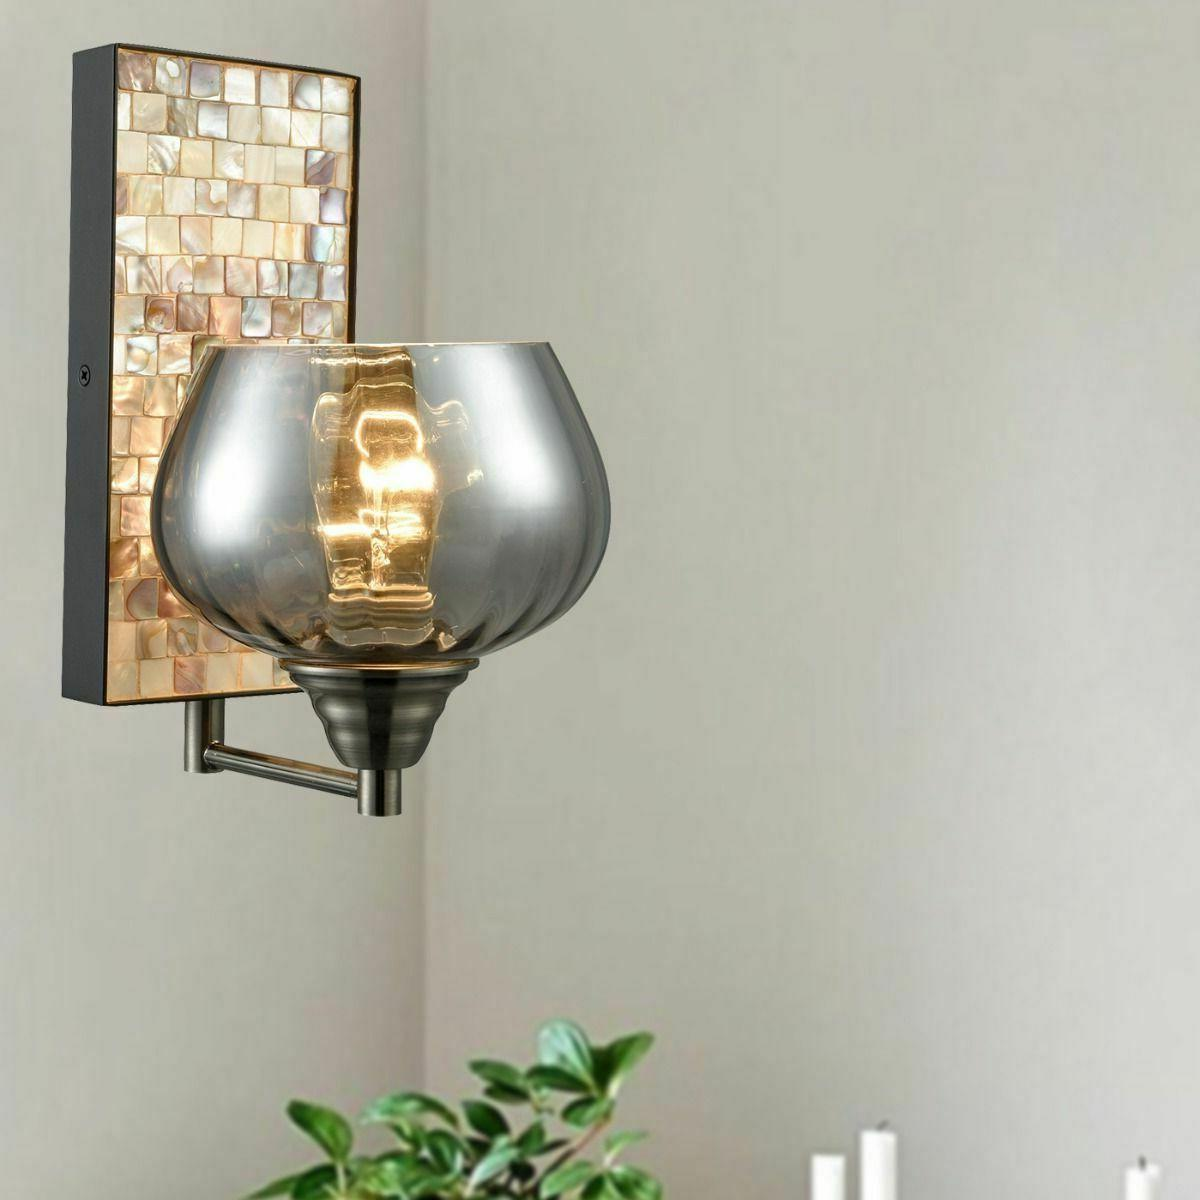 CLAXY Industrial Glass Wall Sconce -